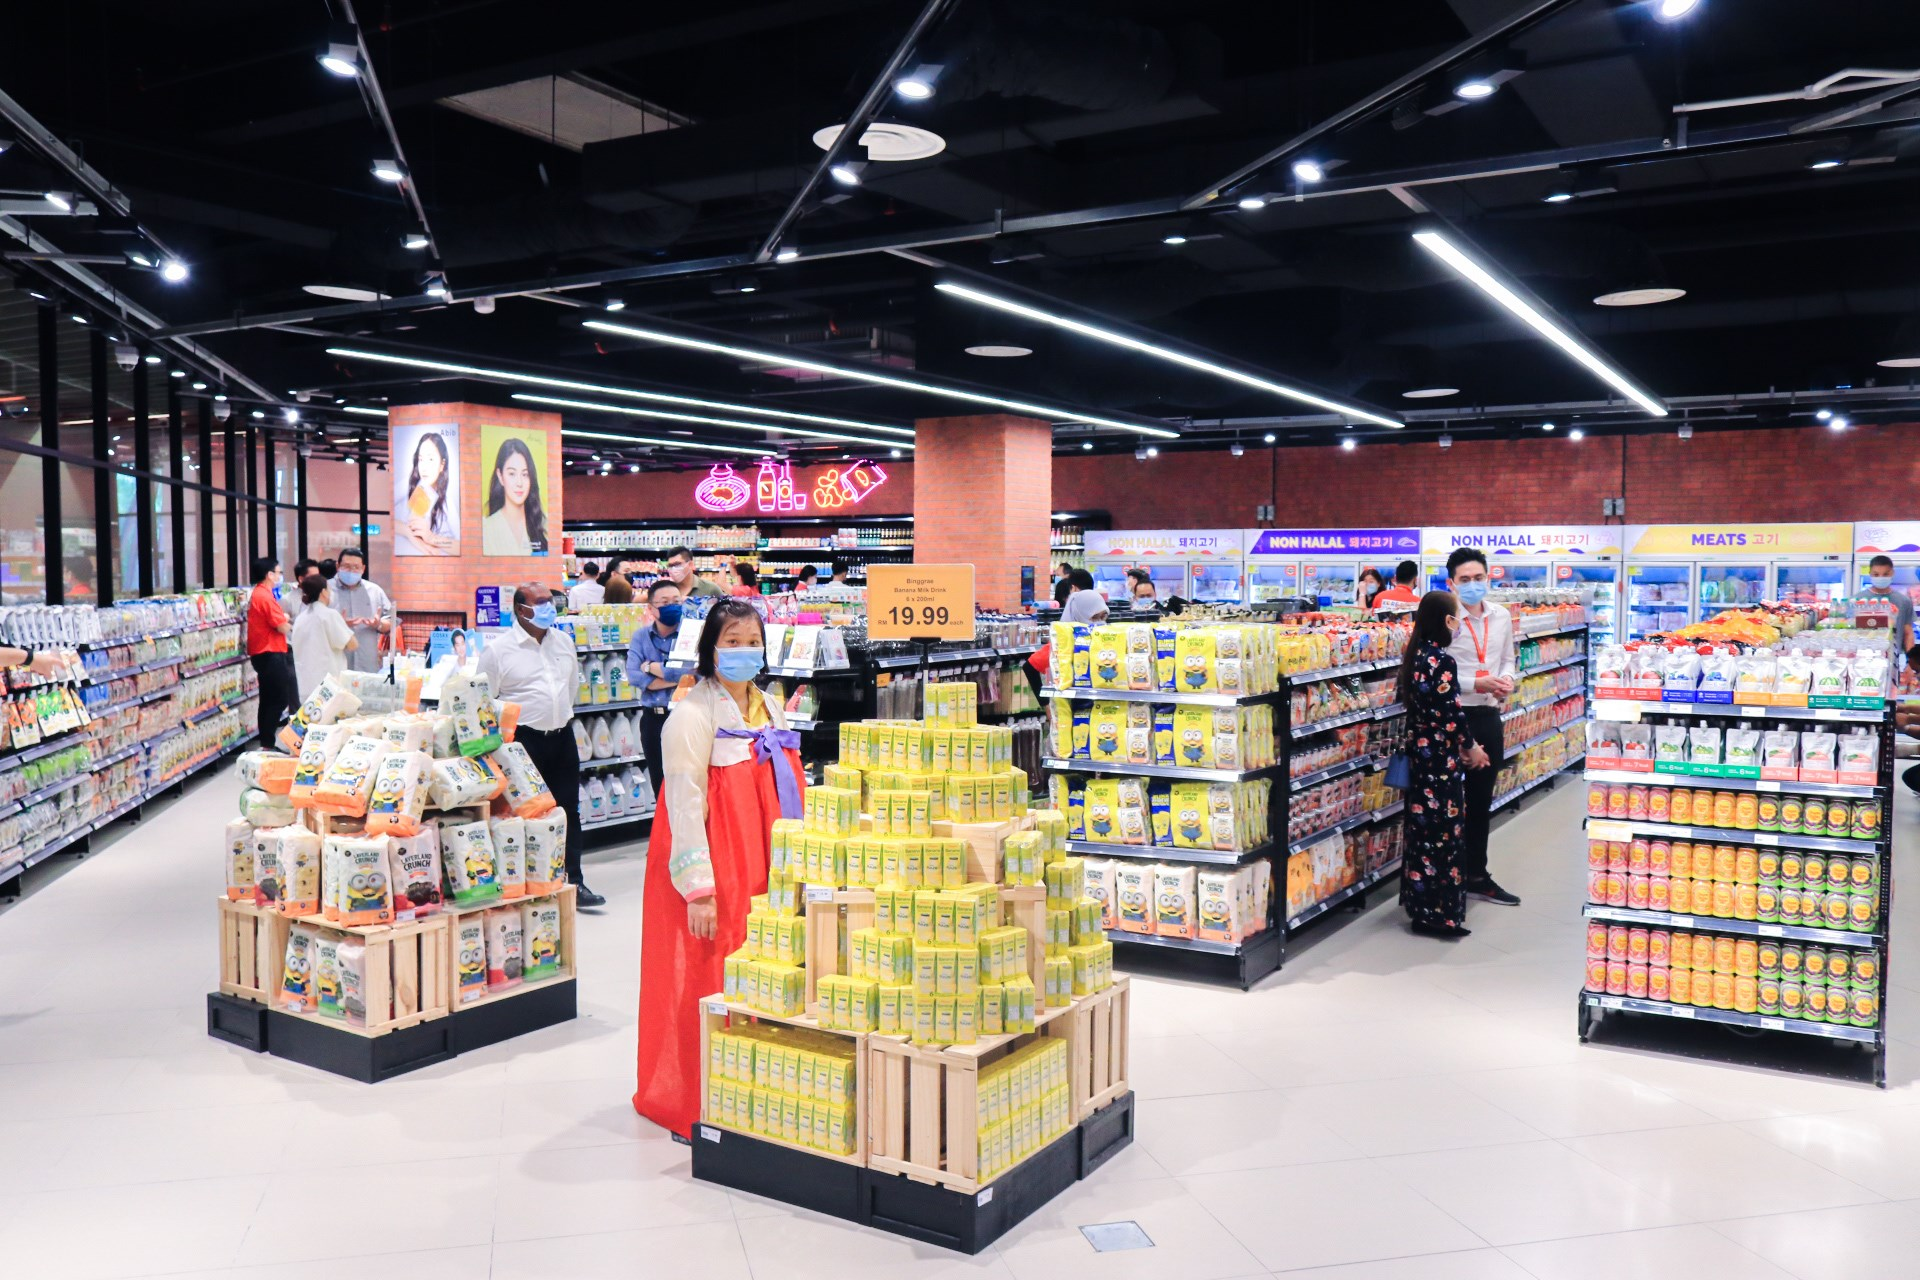 MCO in KL and Johor, with updated SOPs - grocery